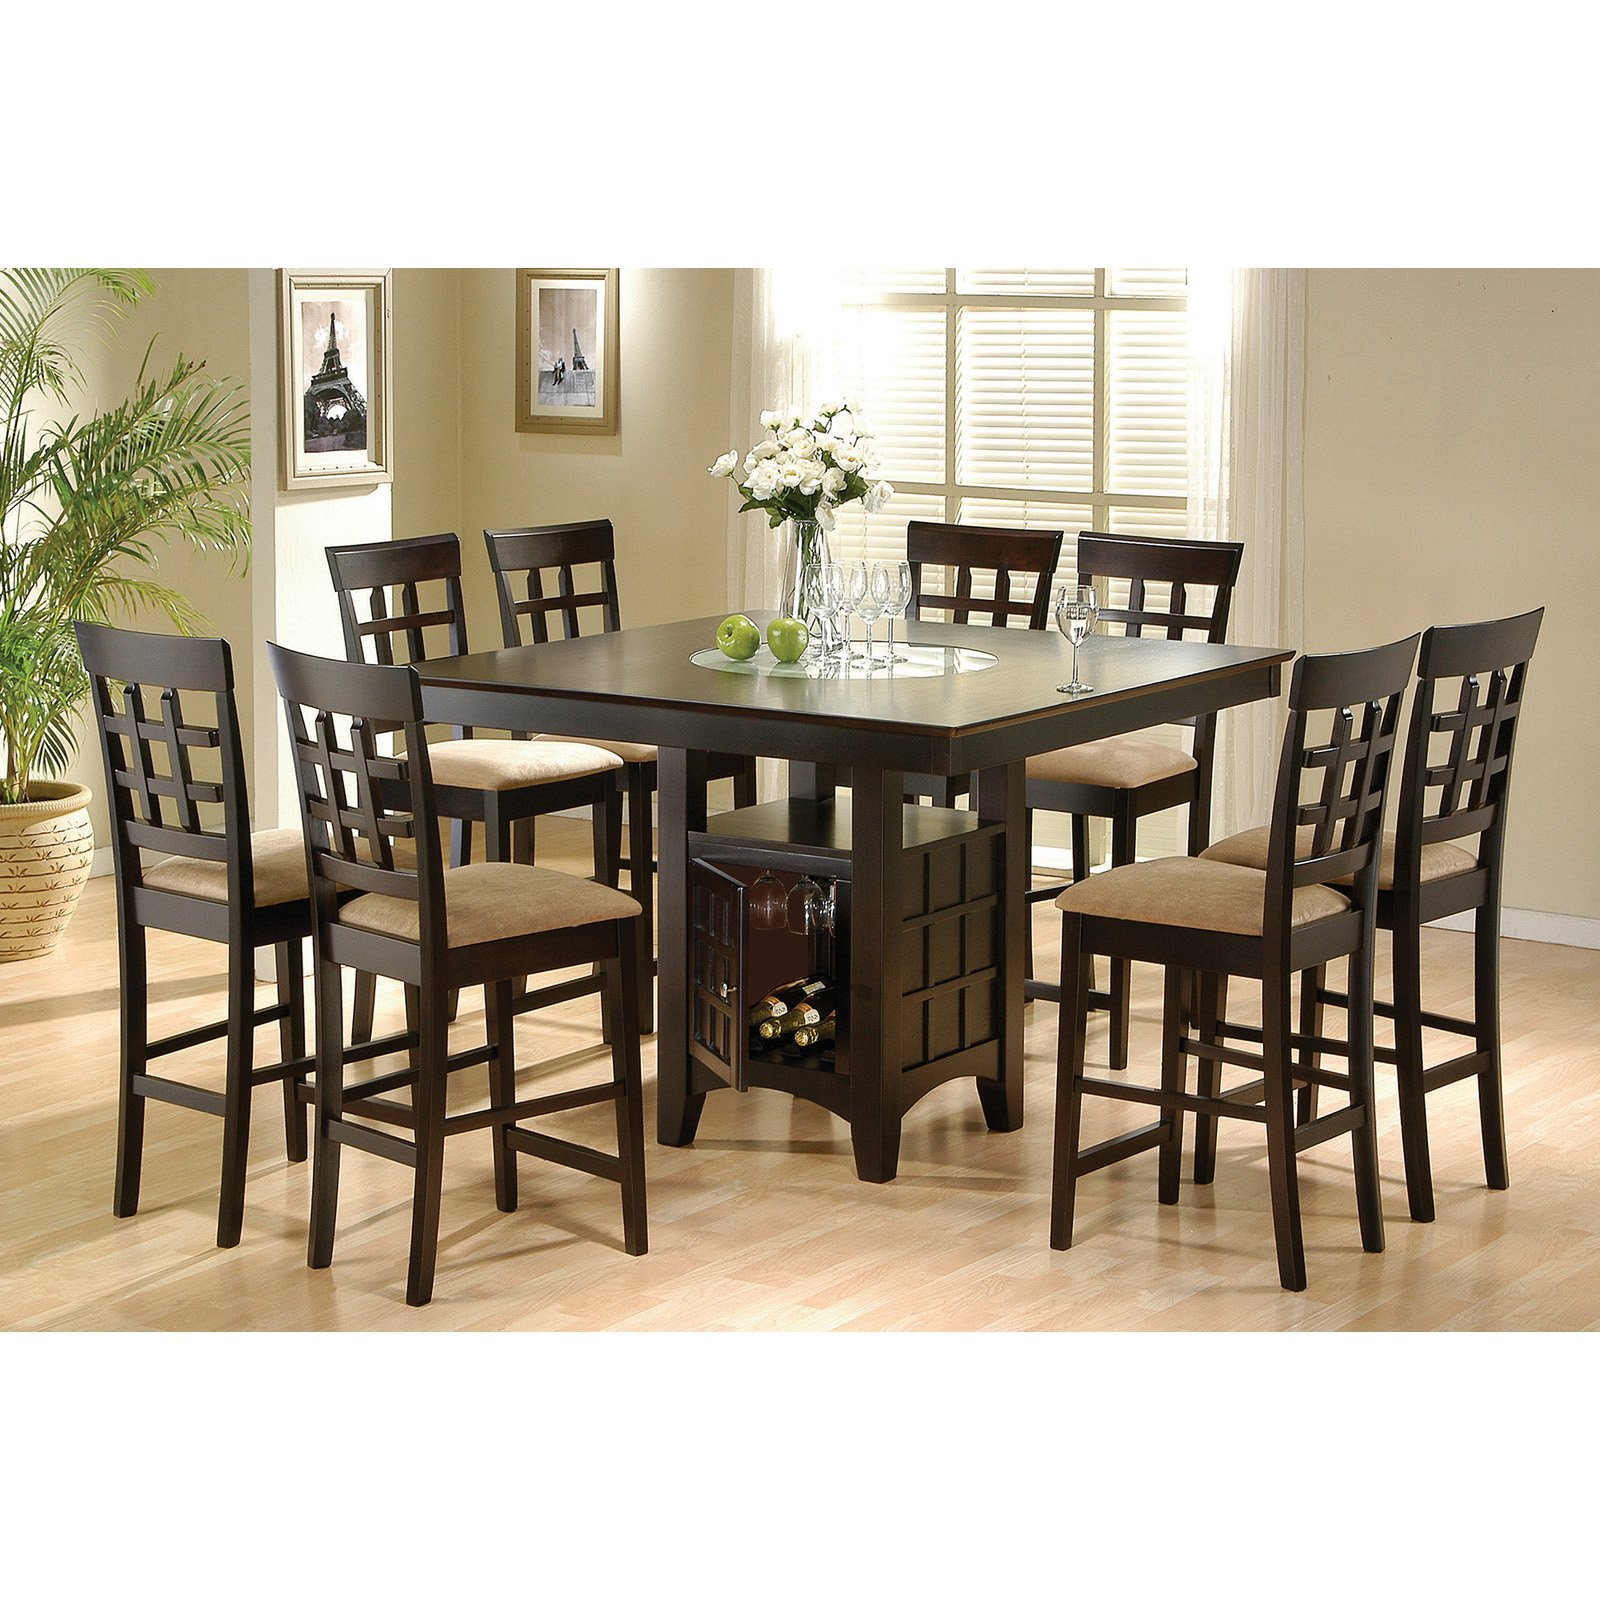 Coaster Furniture Gabriel Counter Height Dining Table